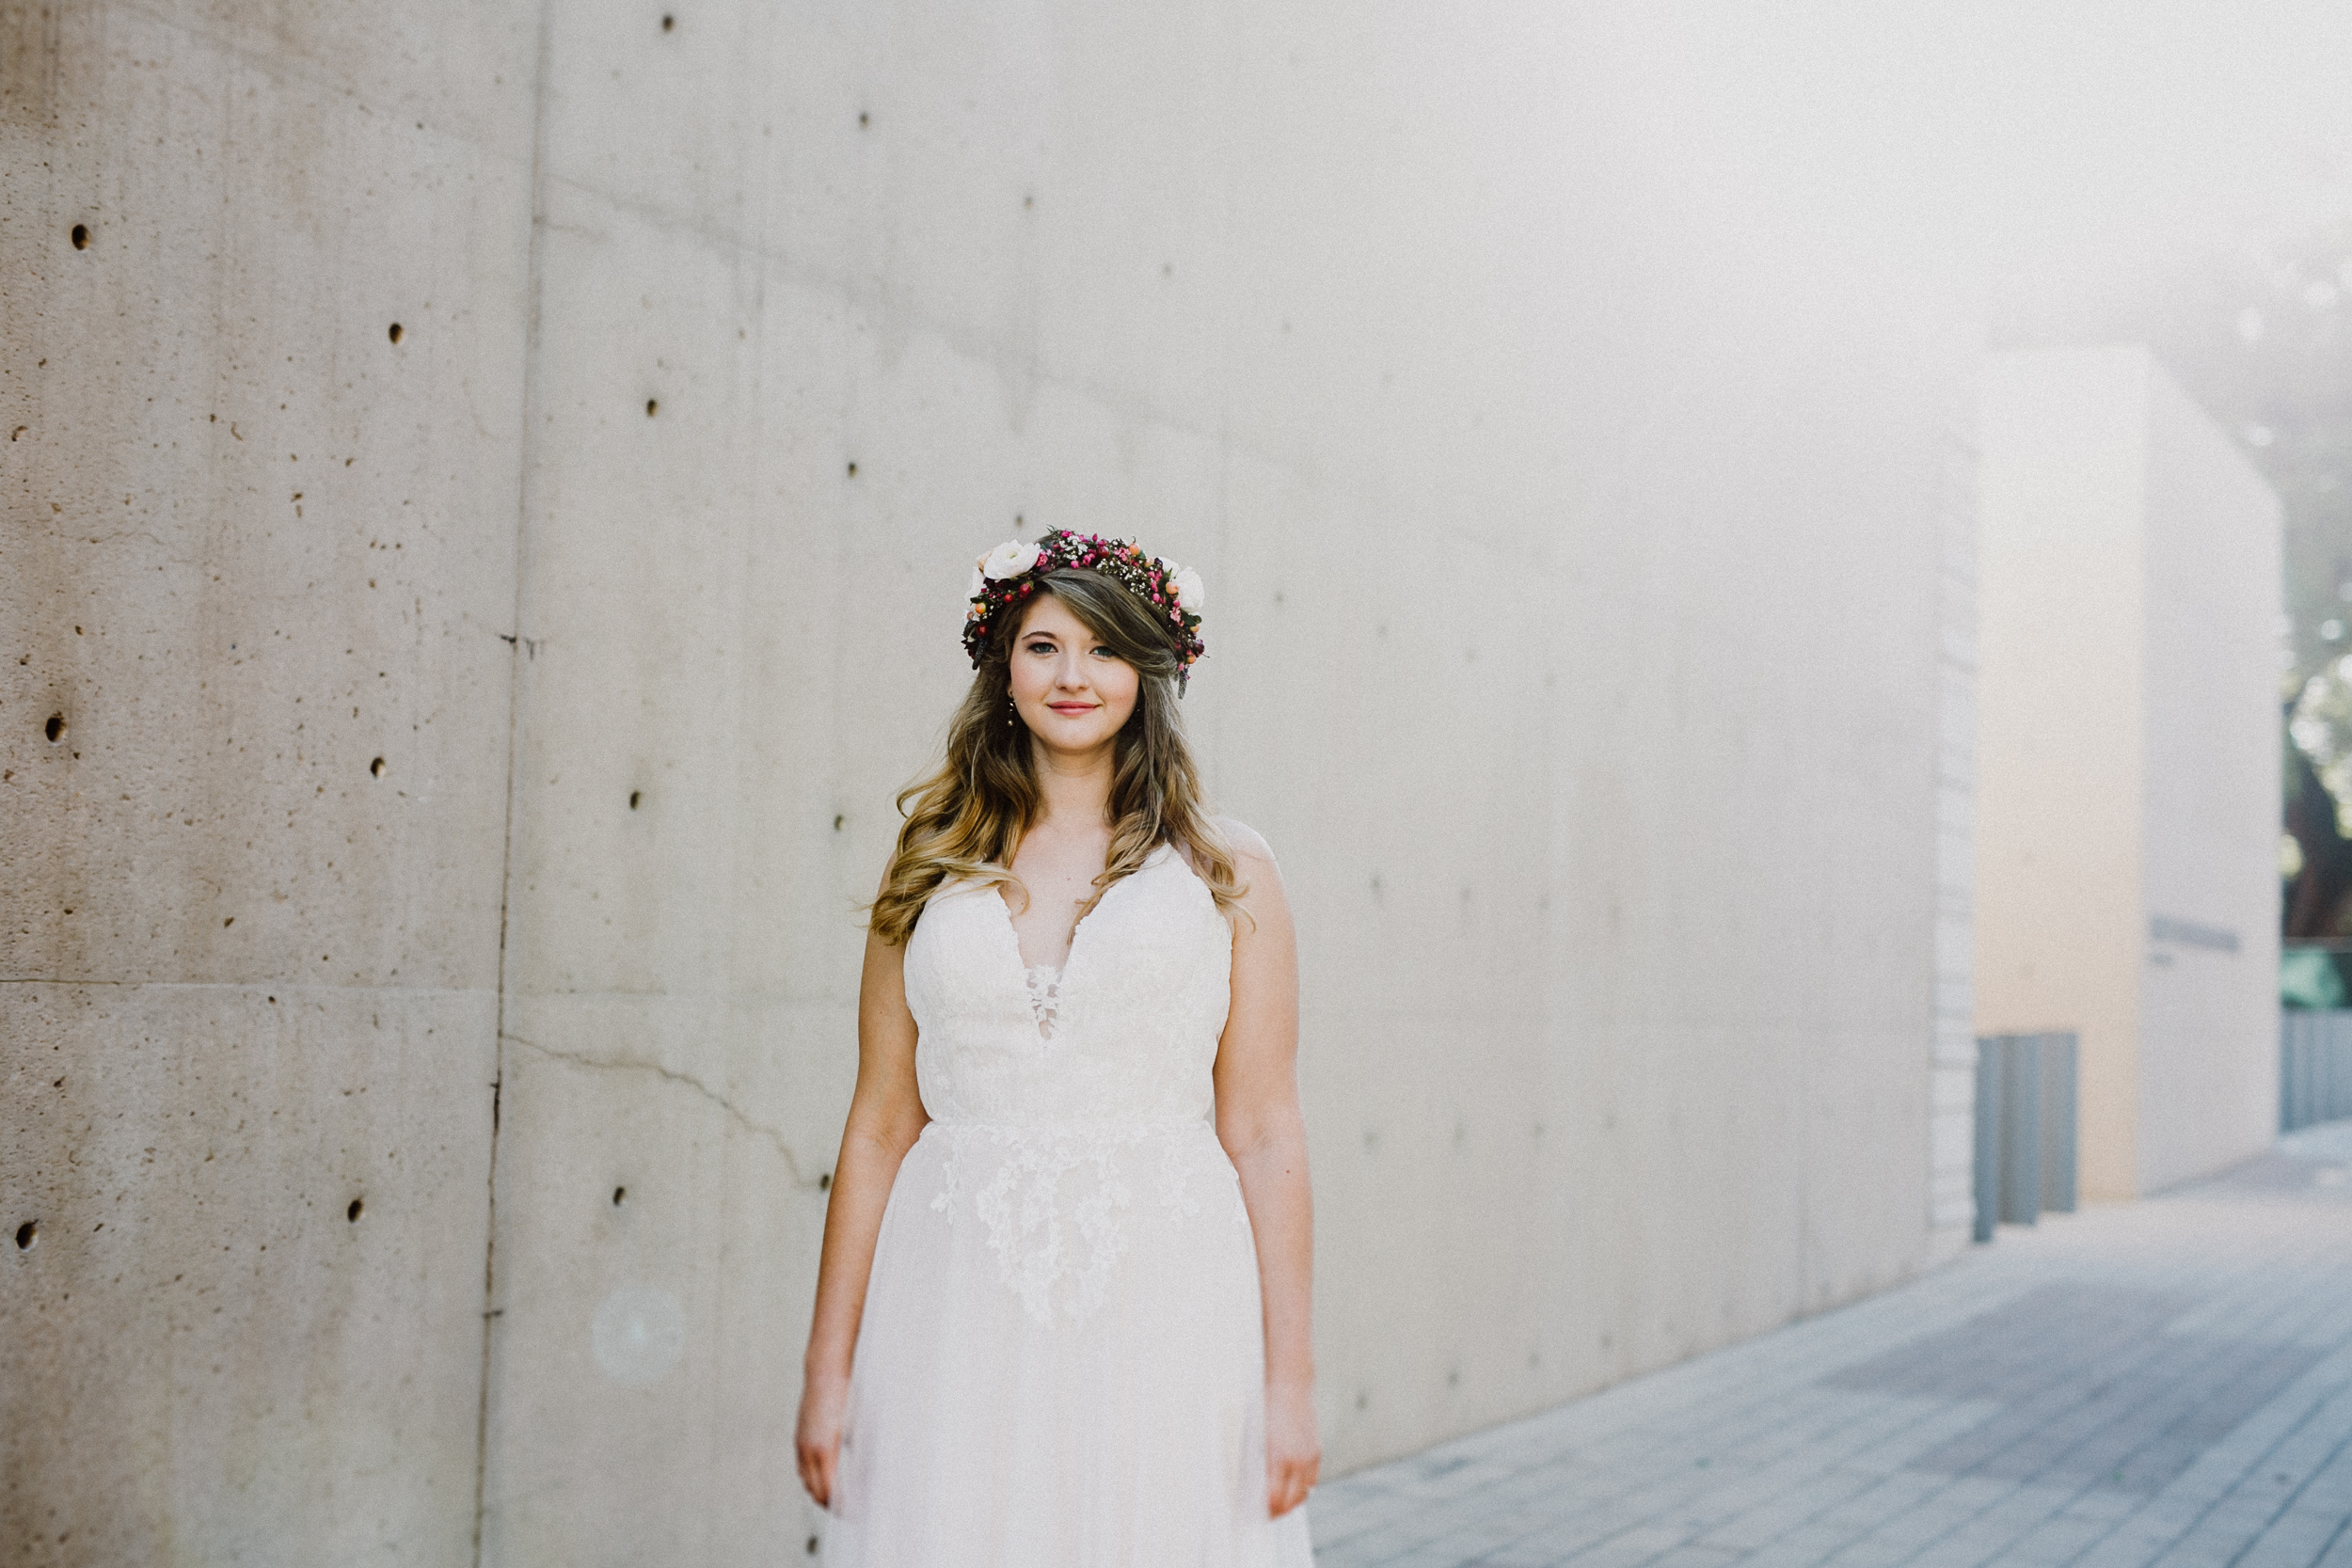 downtown-austin-bridals-erin-105.jpg